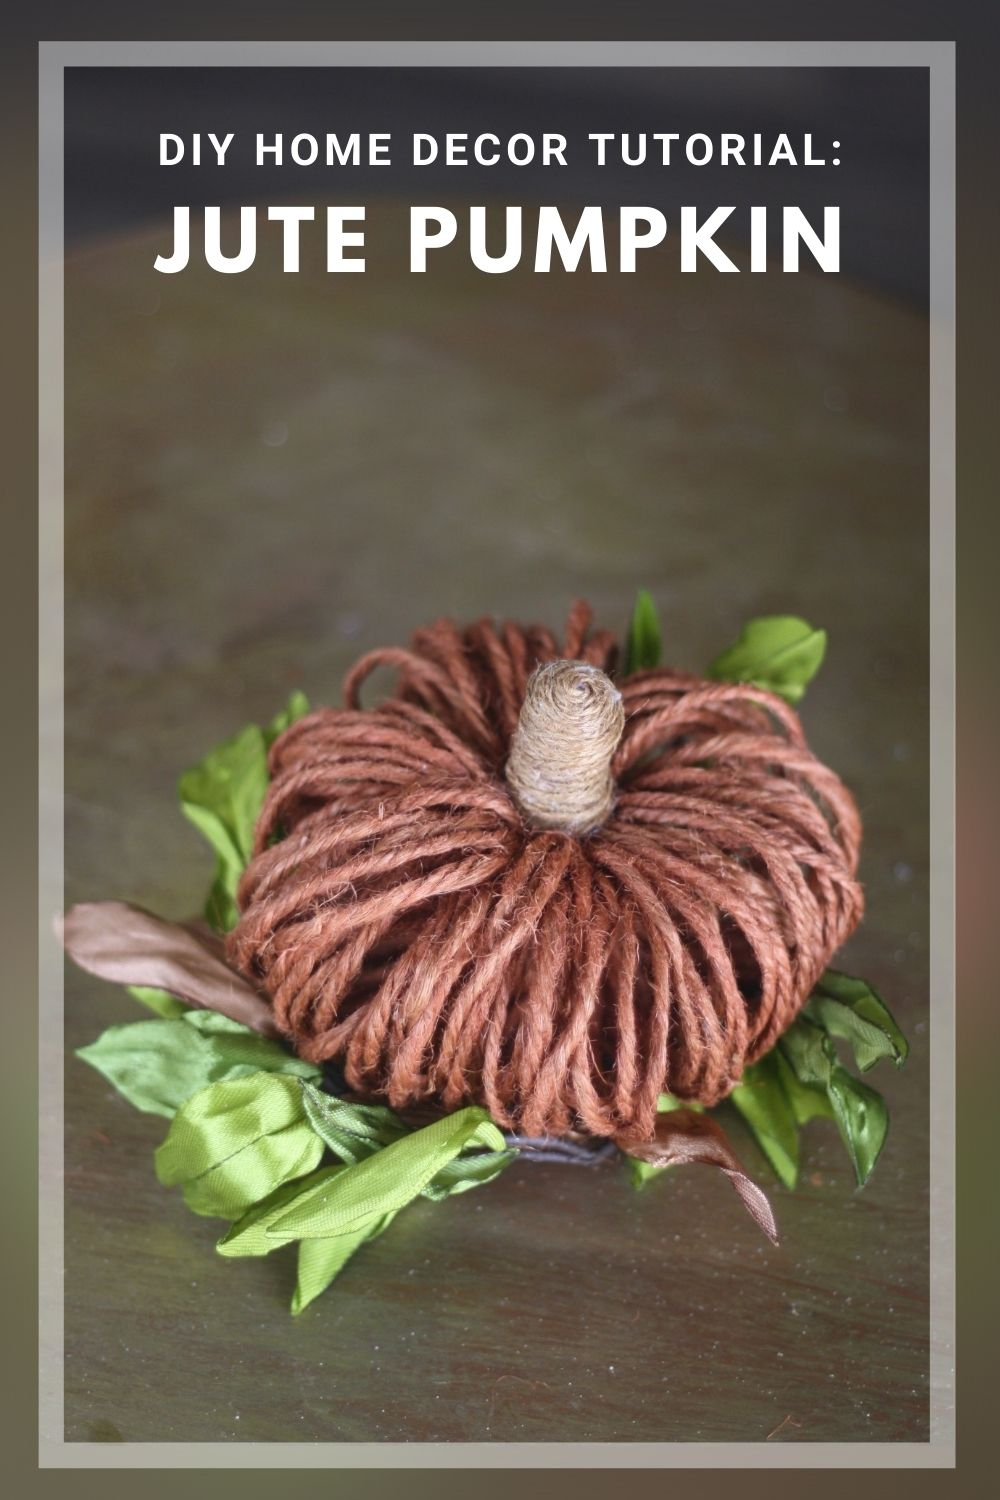 DIY Fall Crafts: How to Make Rustic Twine Pumpkins Using